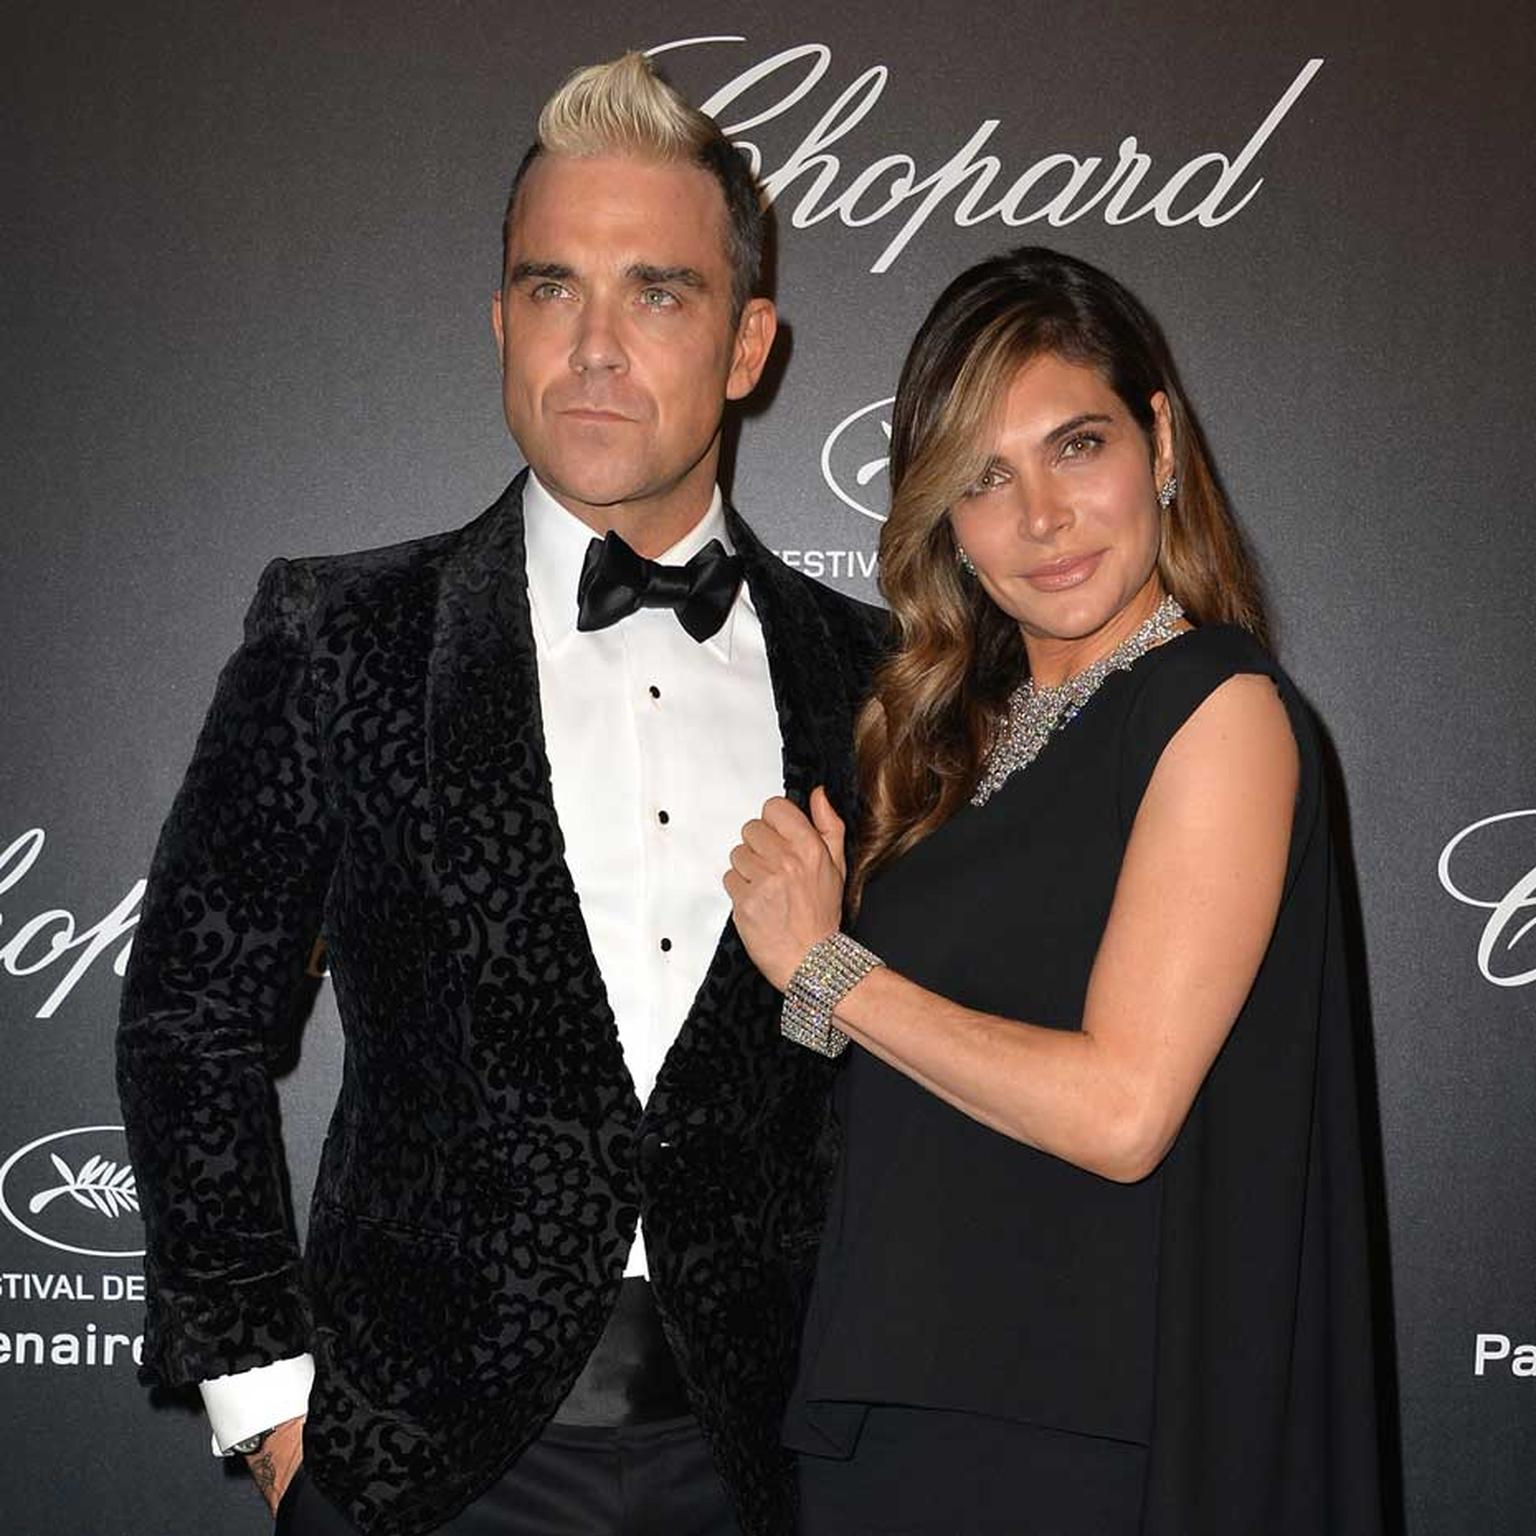 Robbie Williams attended Chopard's GOLD party in Cannes on Monday evening, where he was the star attraction, performing a special concert for A-list guests. His wife Ayda accompanied him accessorised in Chopard diamonds.